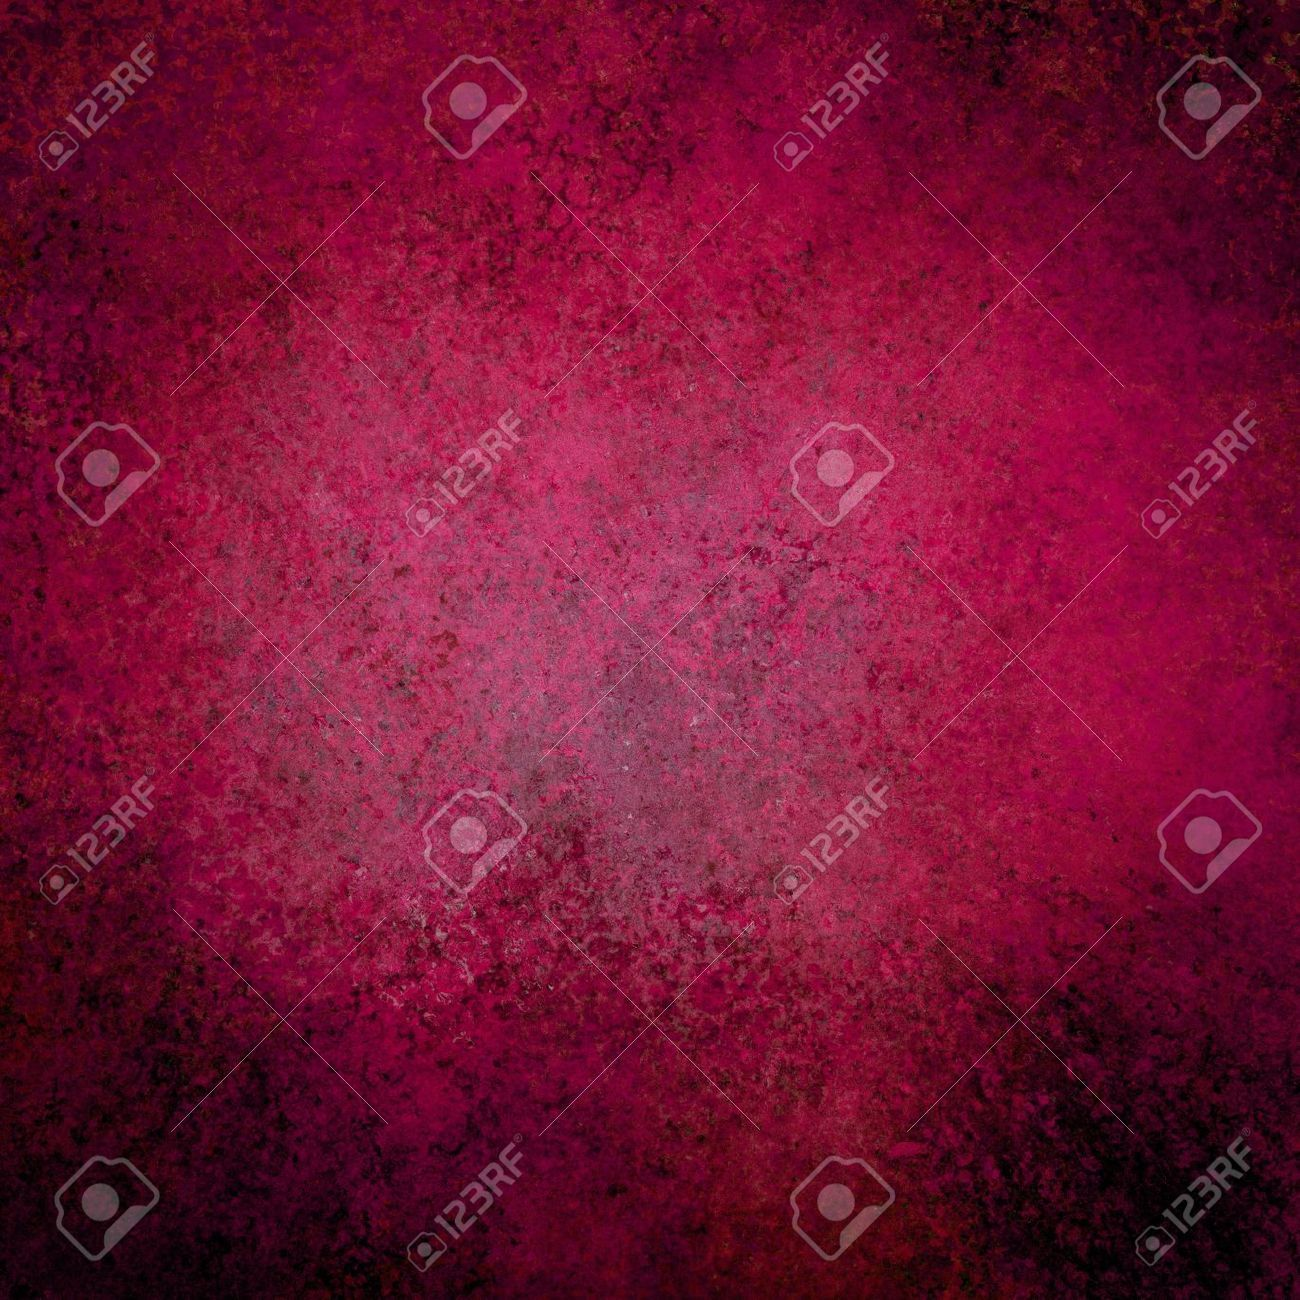 abstract pink background elegant distressed vintage grunge background texture de abstract pink background elegant distressed vintage grunge background texture de